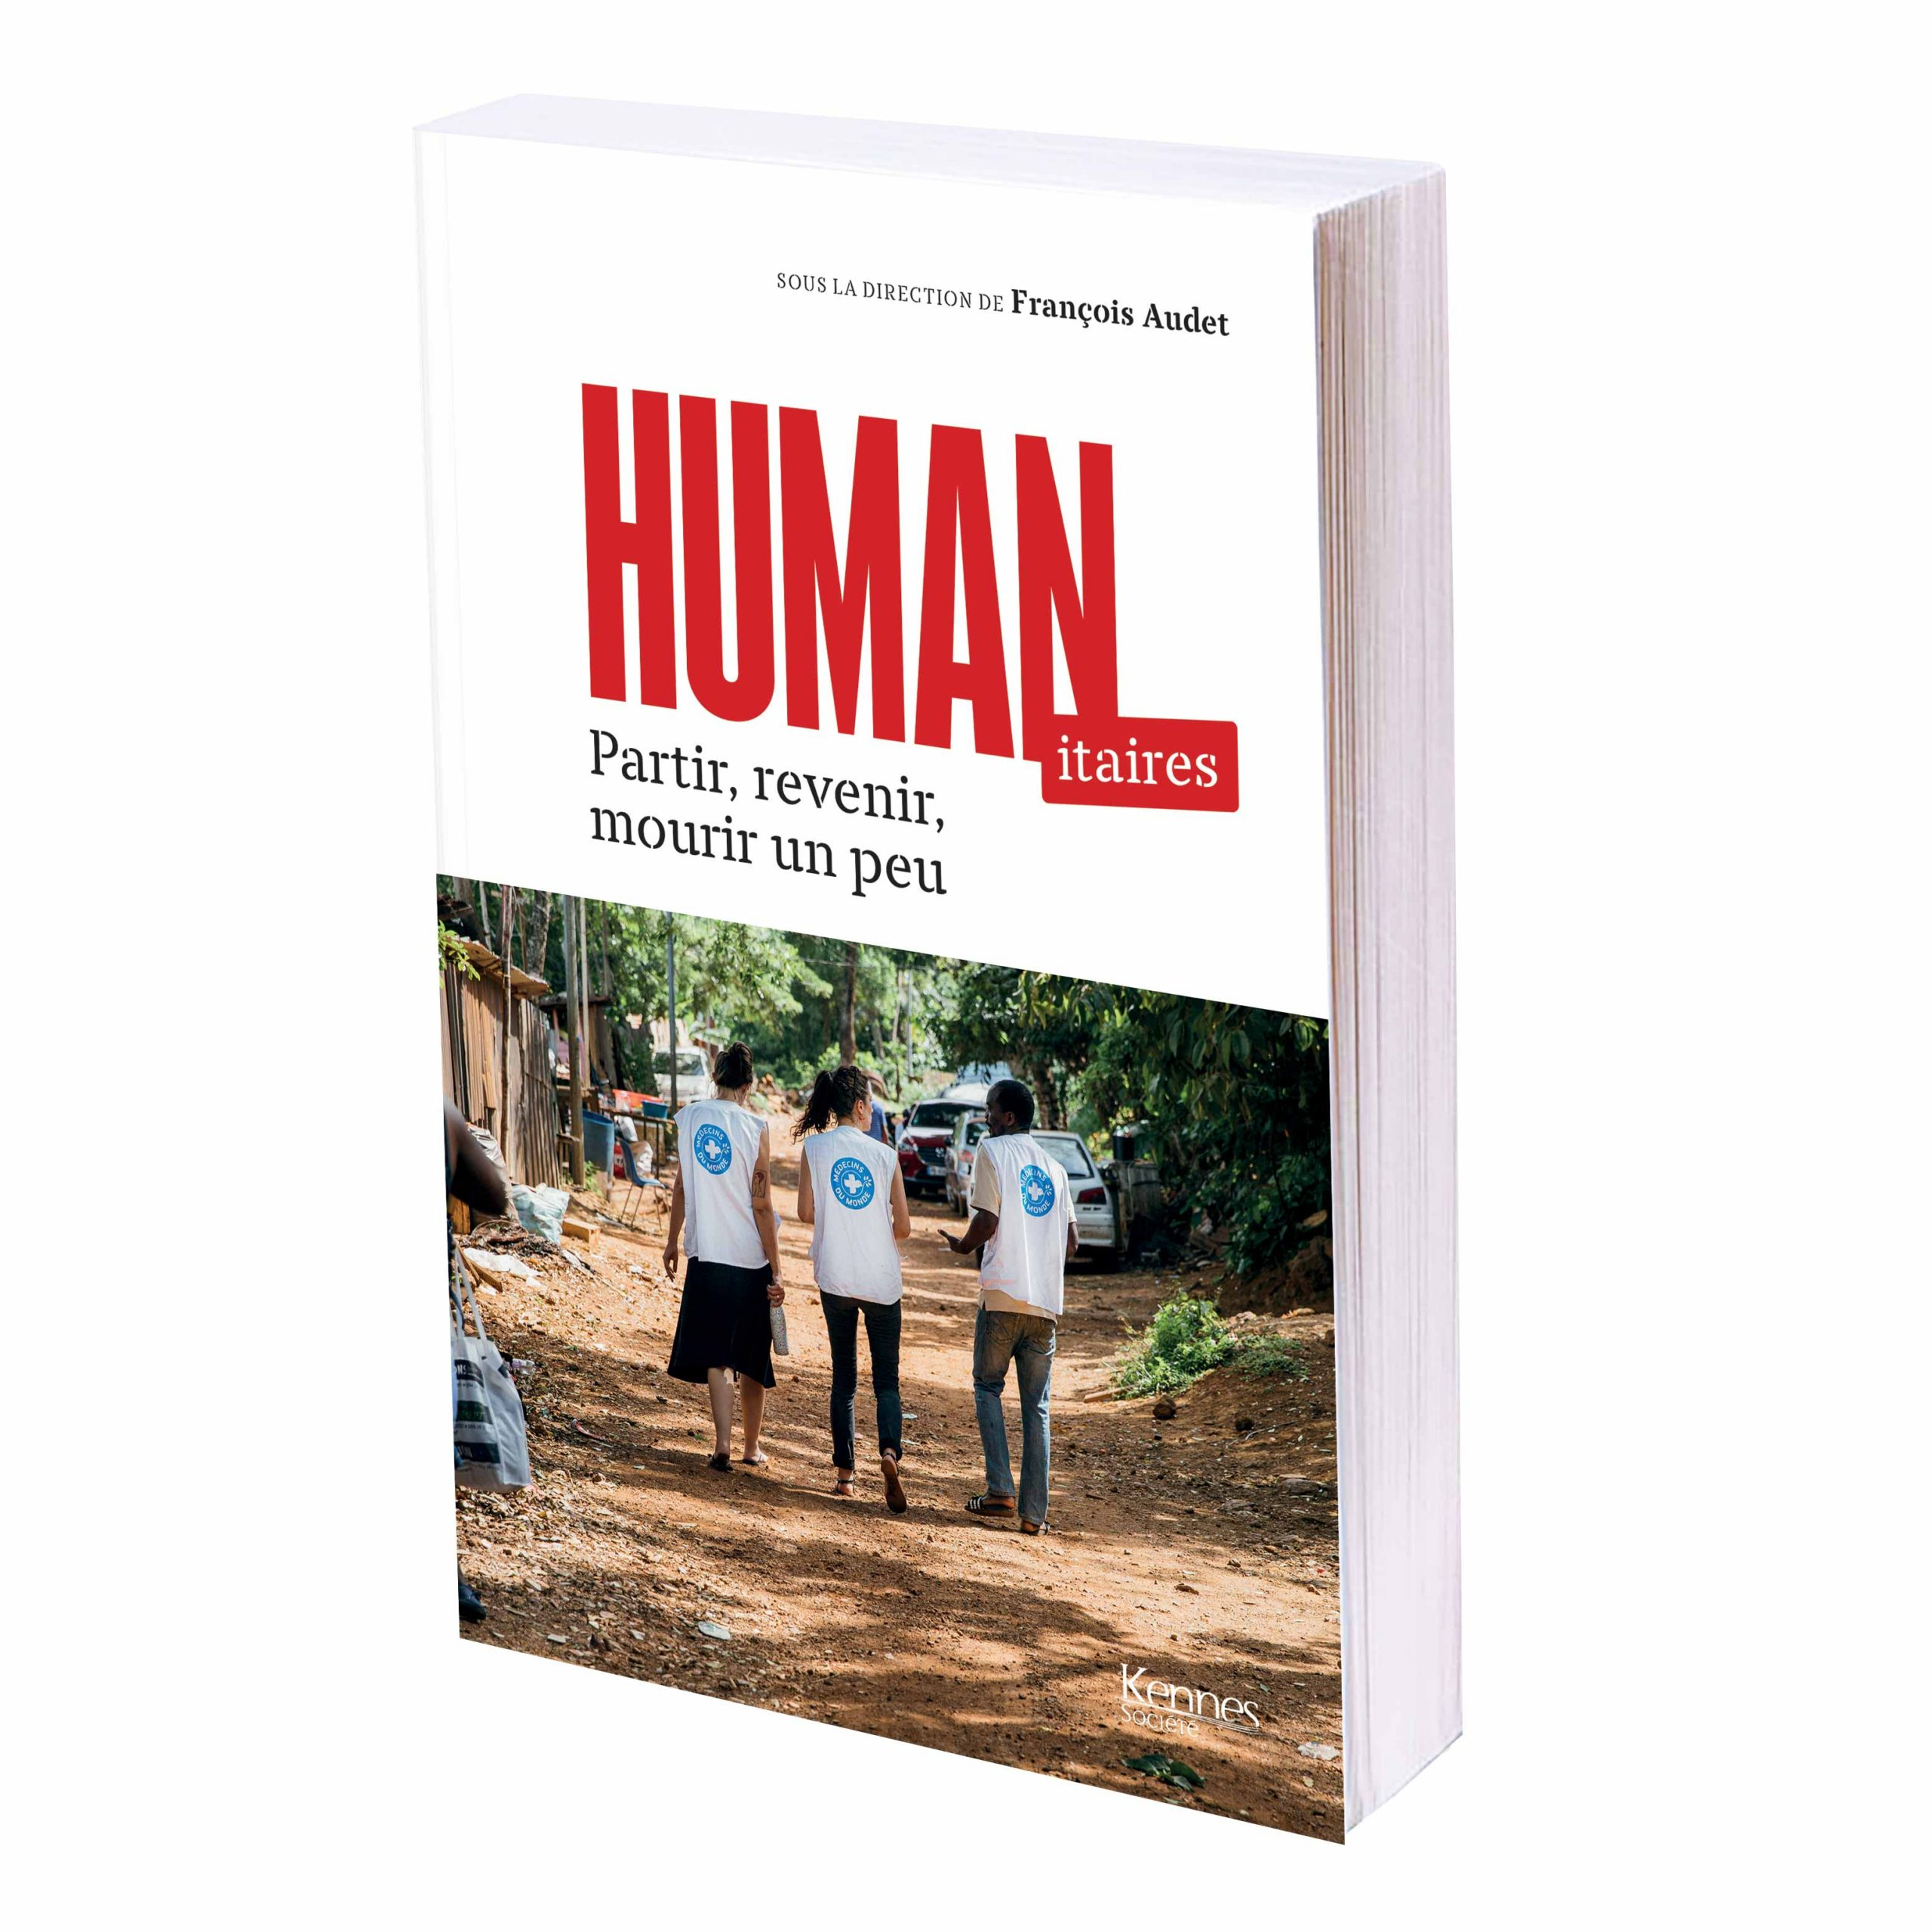 HUMANitaires